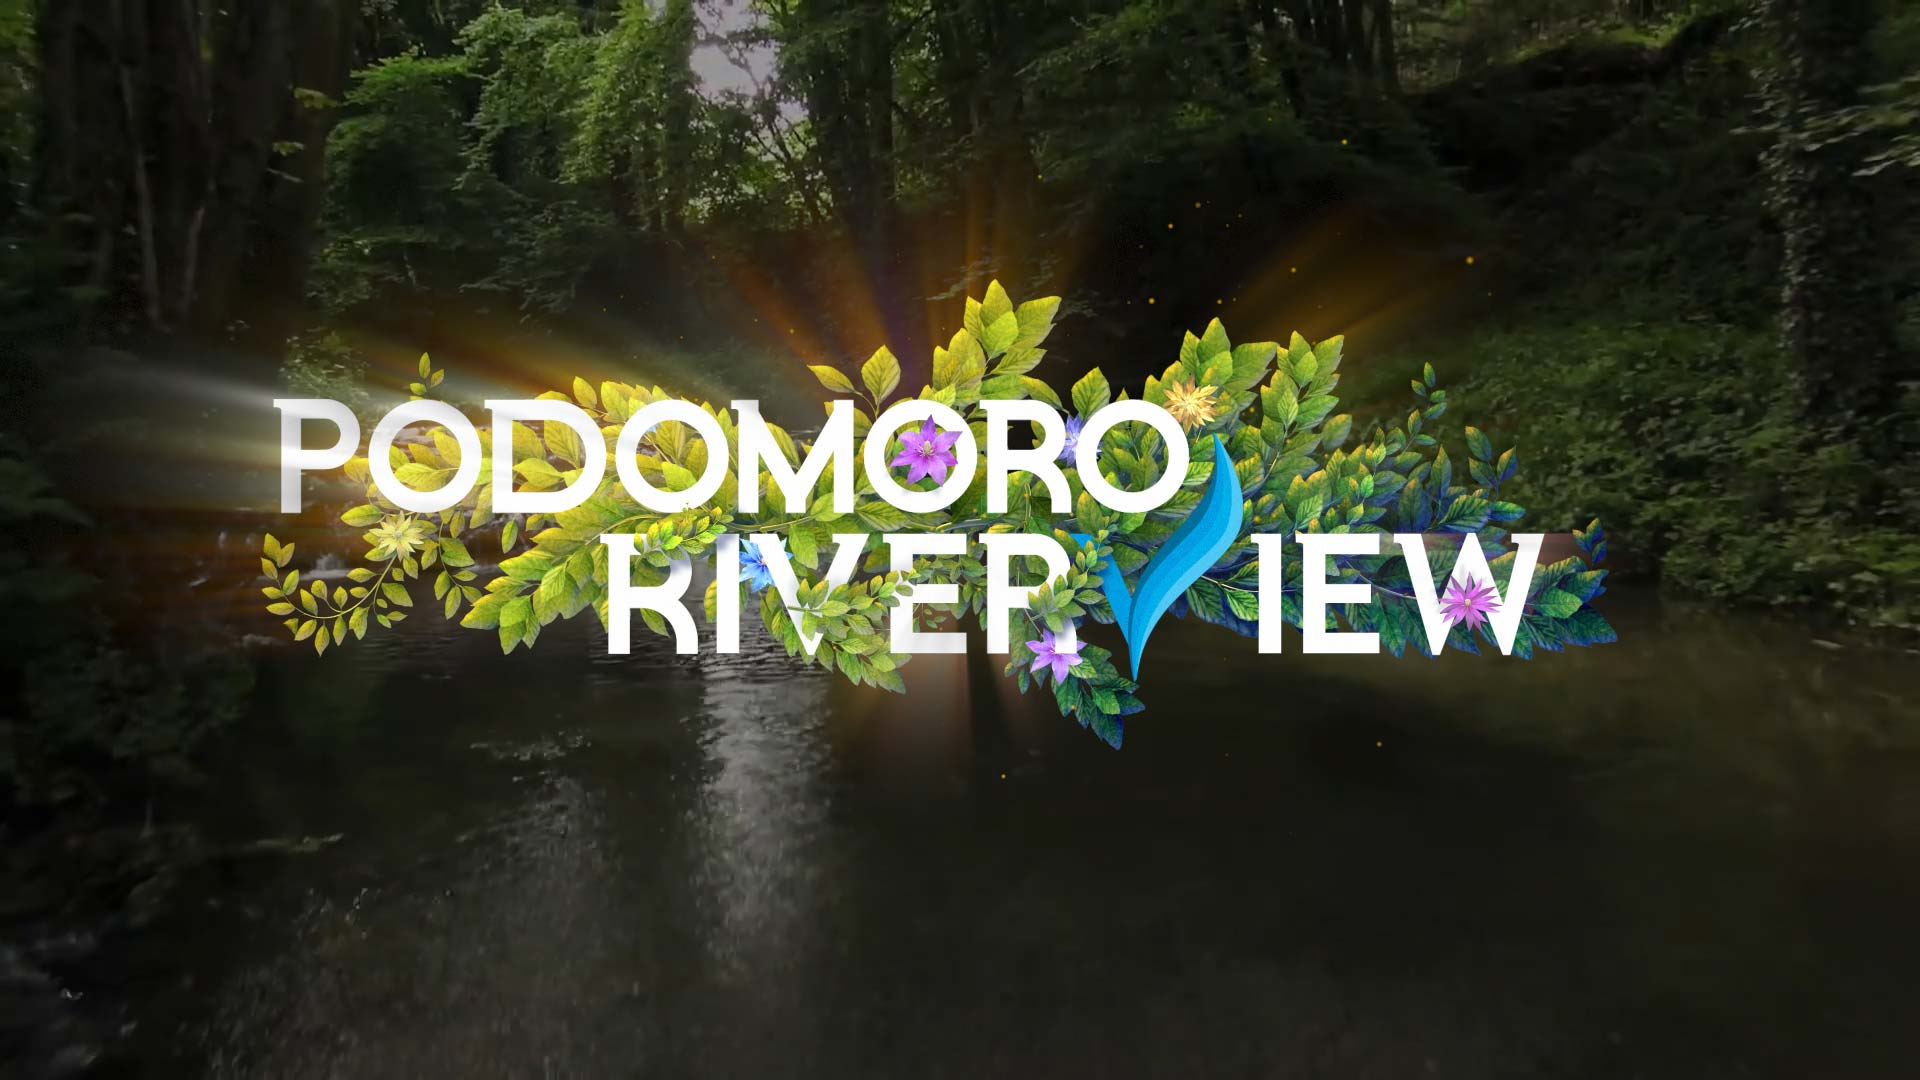 Official Podomoro River View